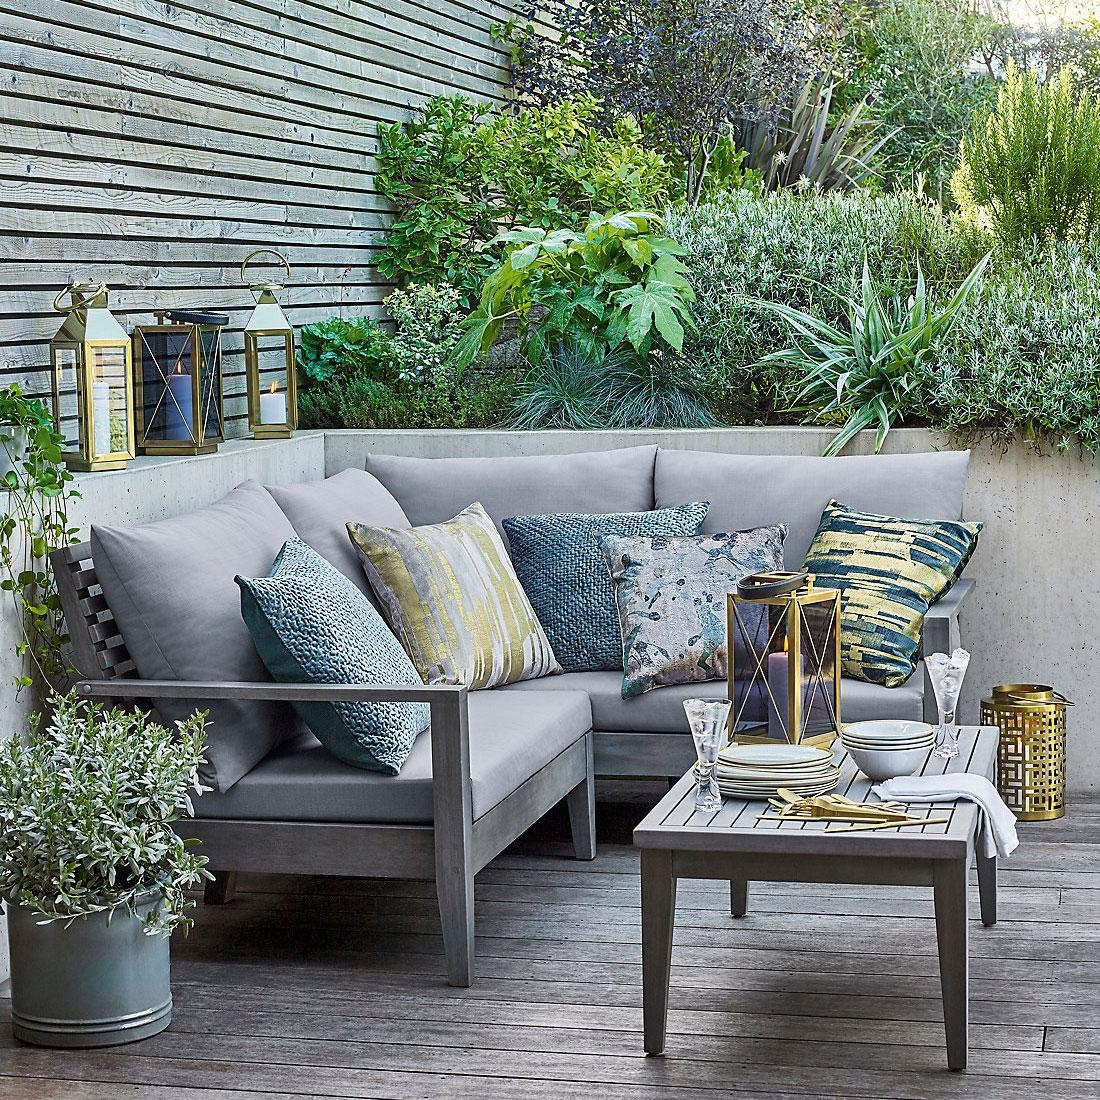 Summer Sales 2017: The Best Offers From John Lewis, Marks And Throughout Marks And Spencer Sofas And Chairs (View 9 of 20)